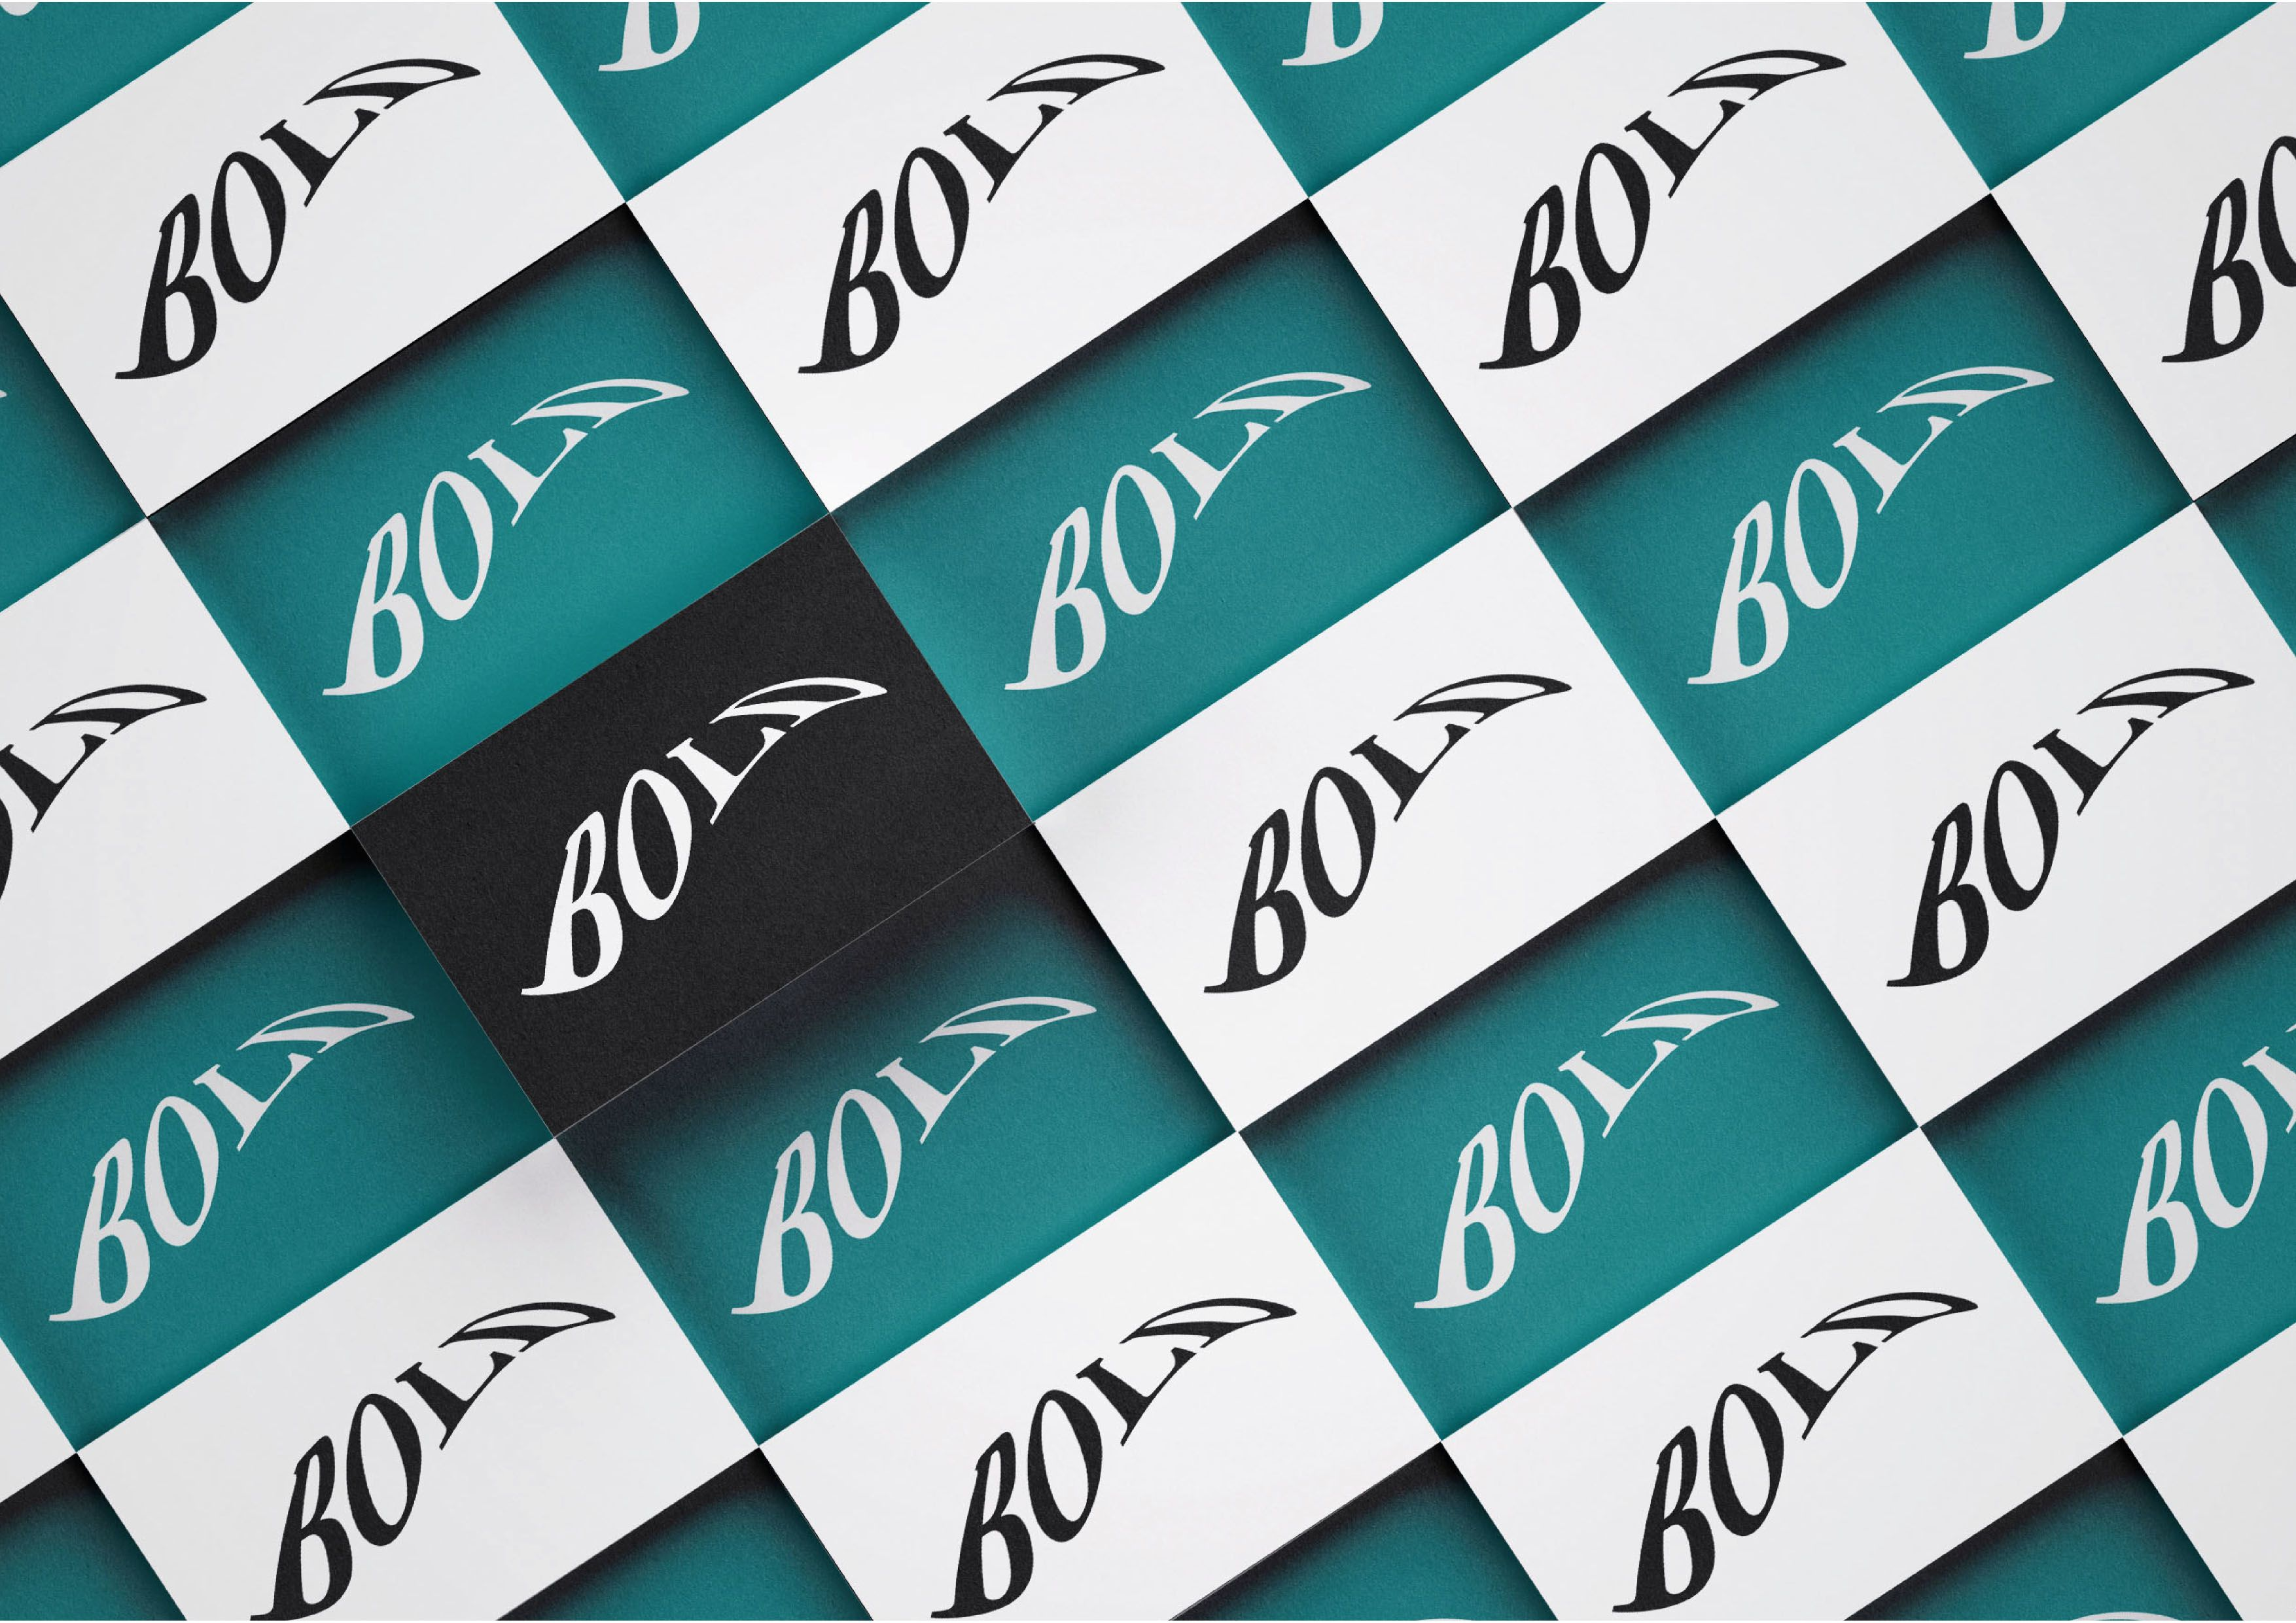 A mock up design by Miran Jurisevic showing what the business cards for 'Bold' would look like. The dominant colours are black, white, beige and turquoise